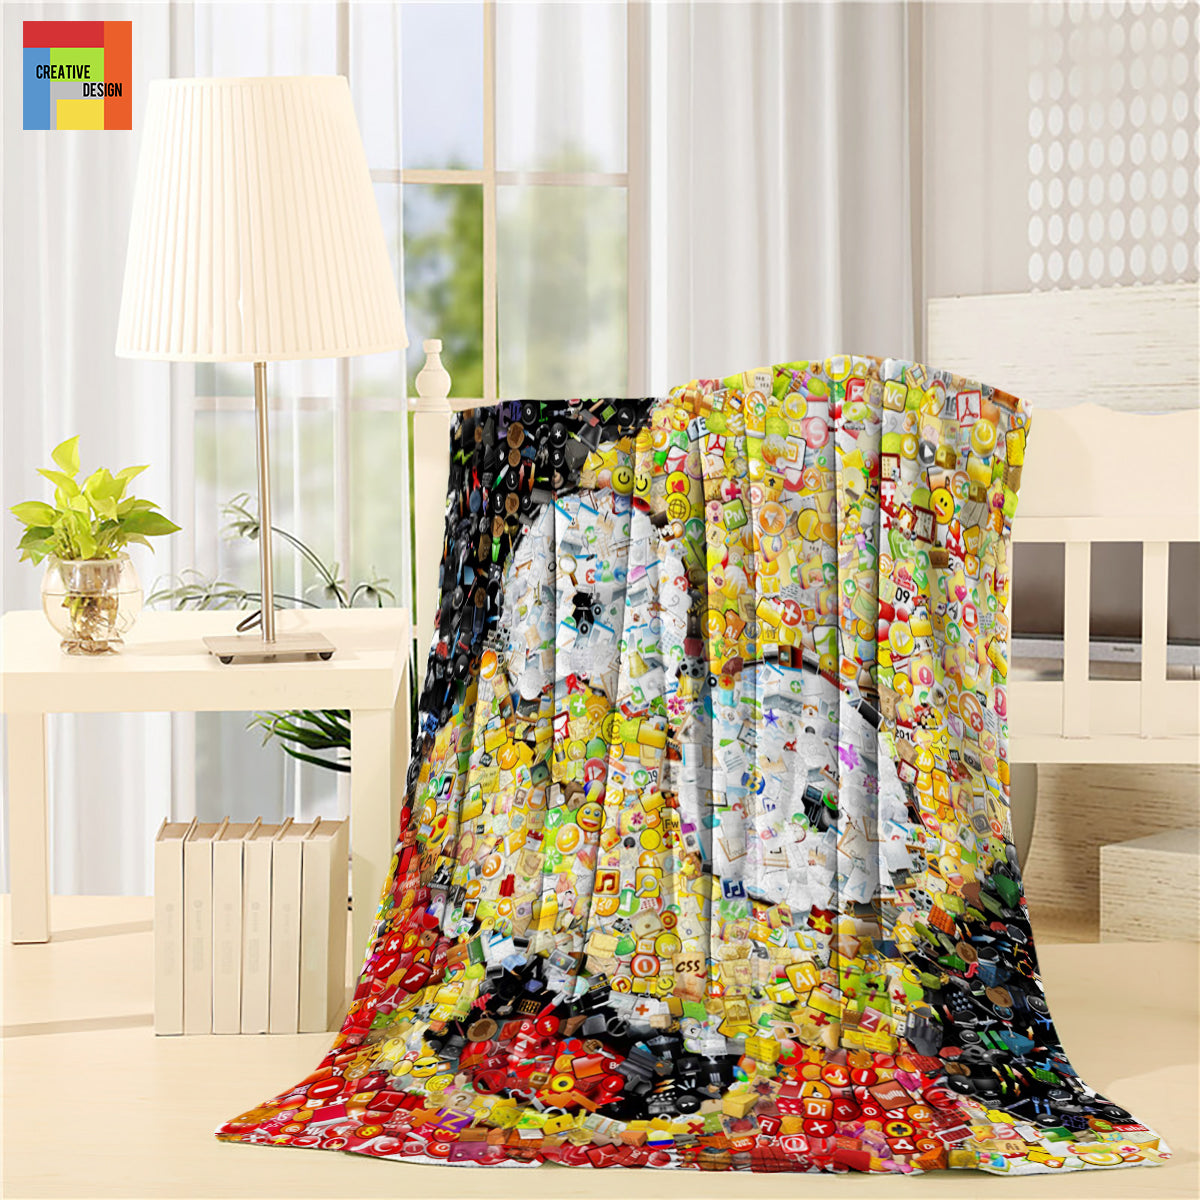 The Bart Simpsons Anime Print Throw Blanket